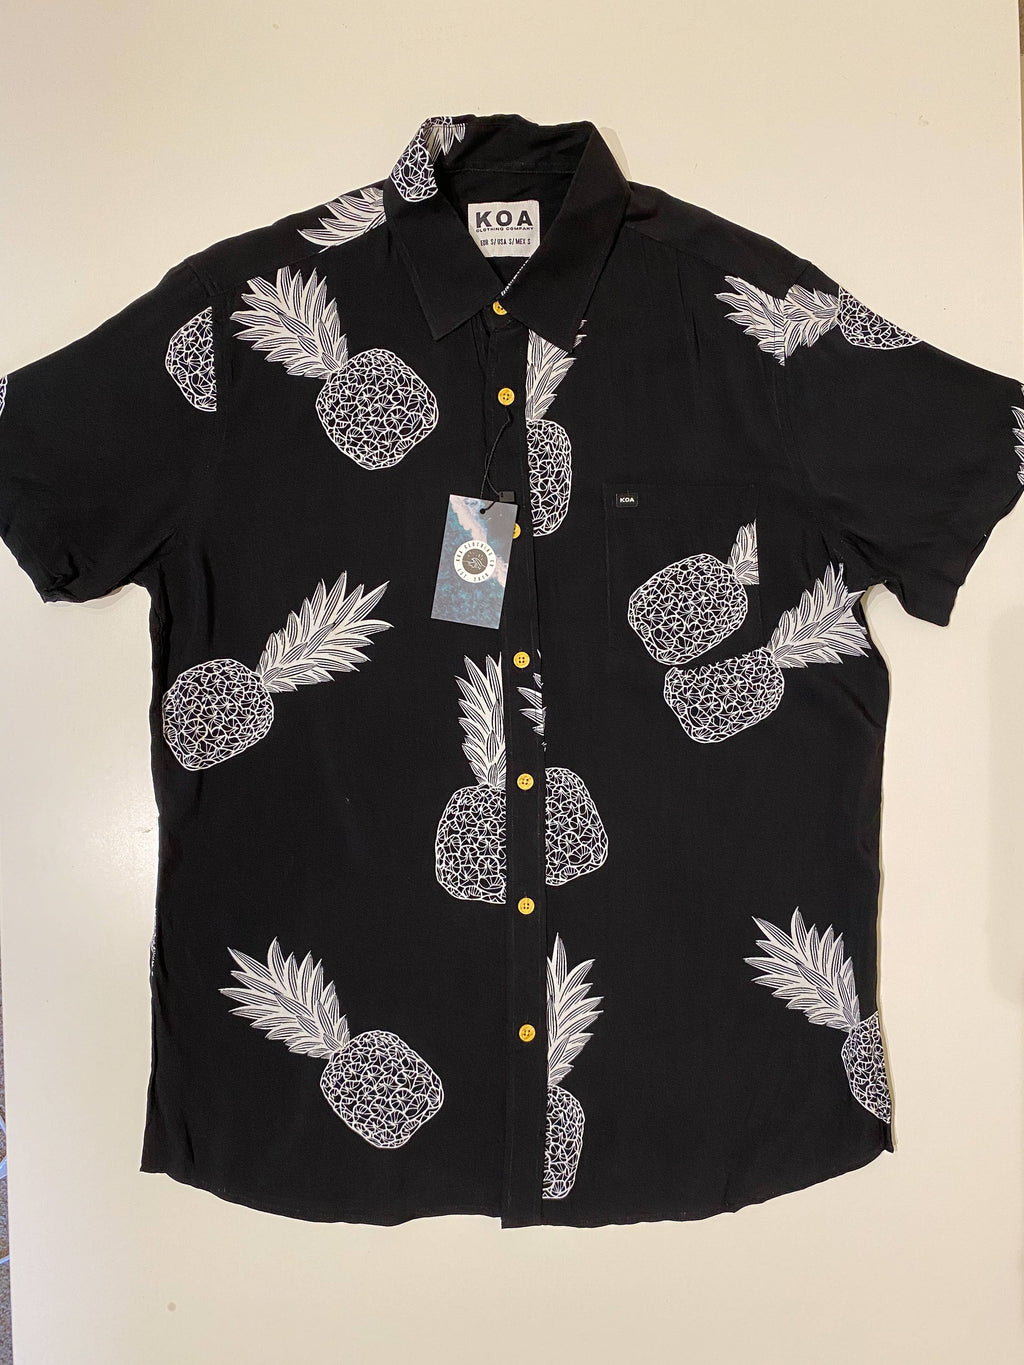 KOA Clothing Company - Classic Black Pineapple Shirt